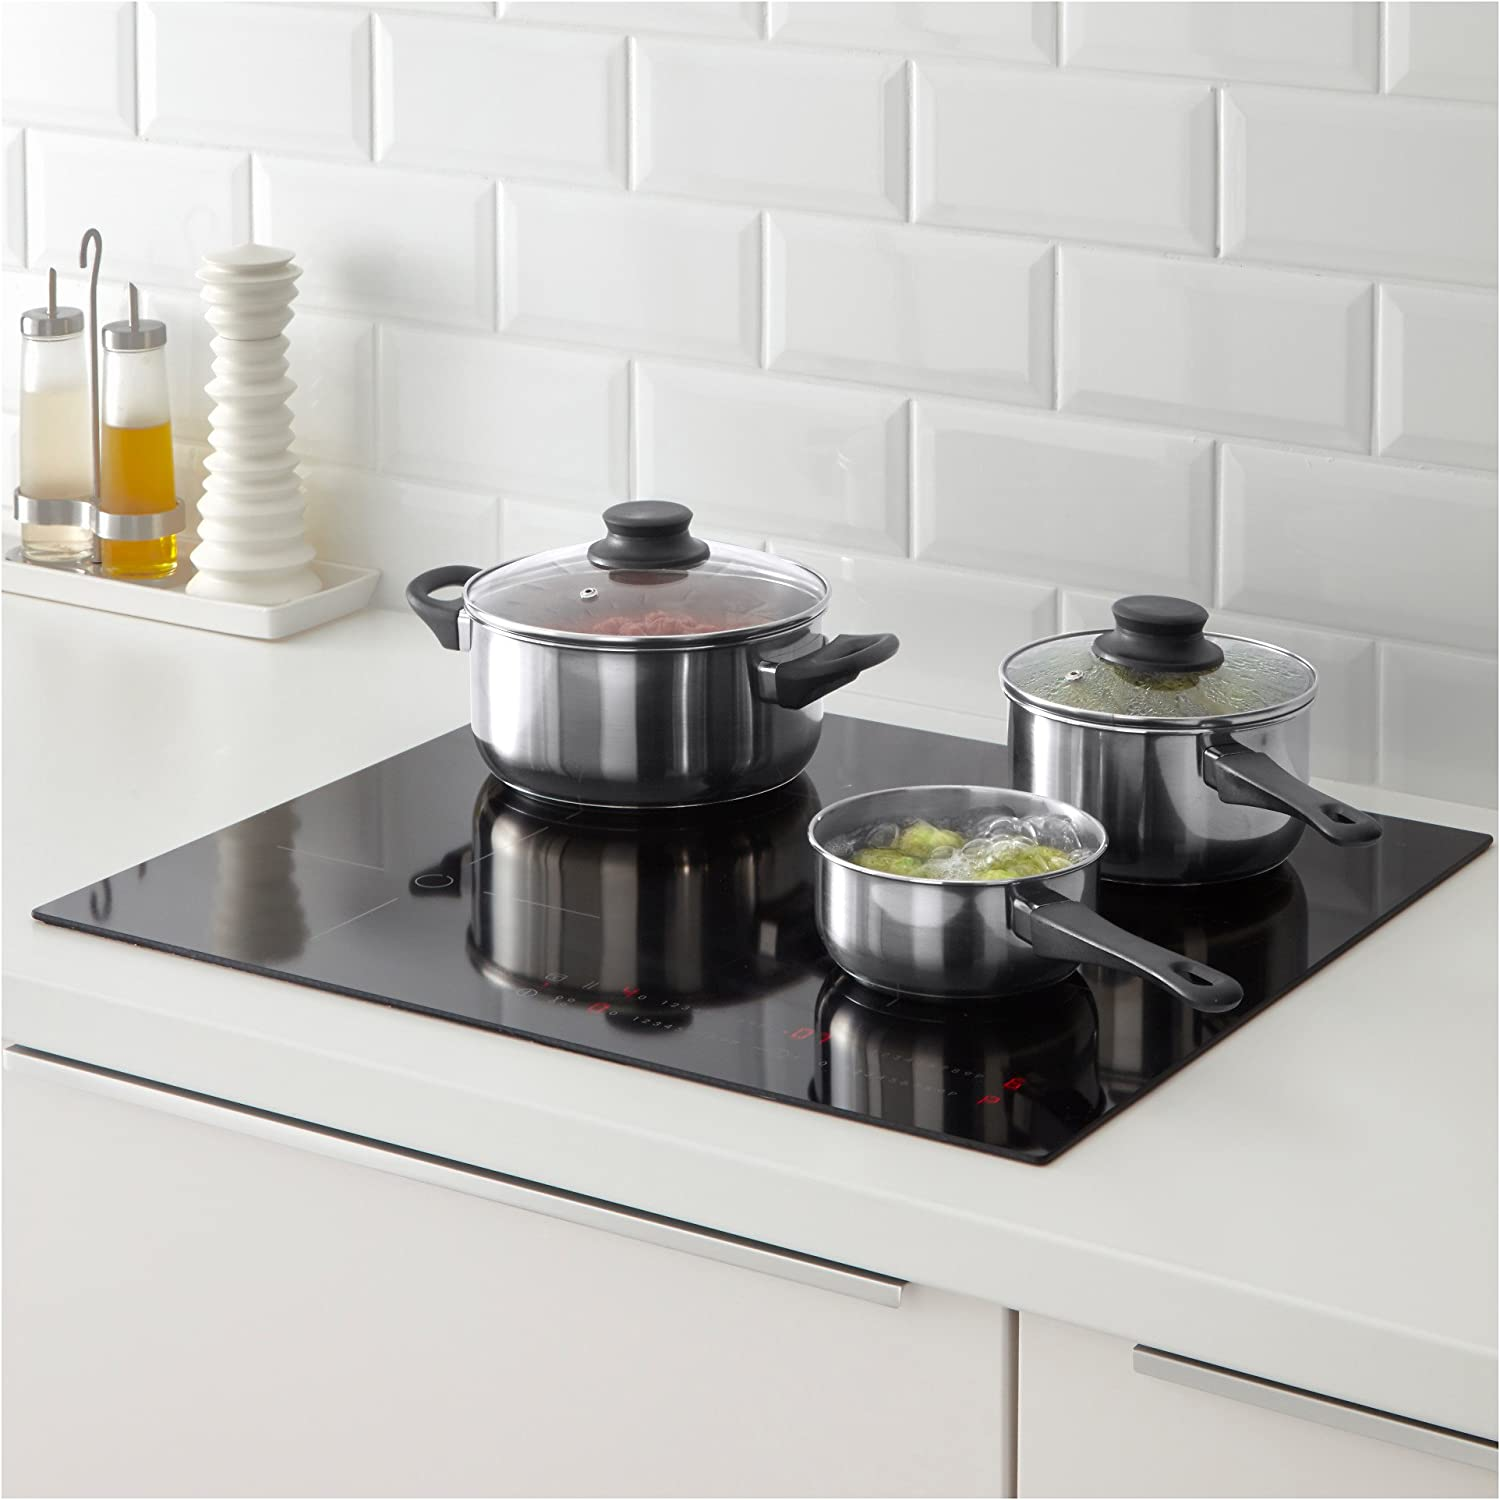 What is the best cookware for gas stoves - review